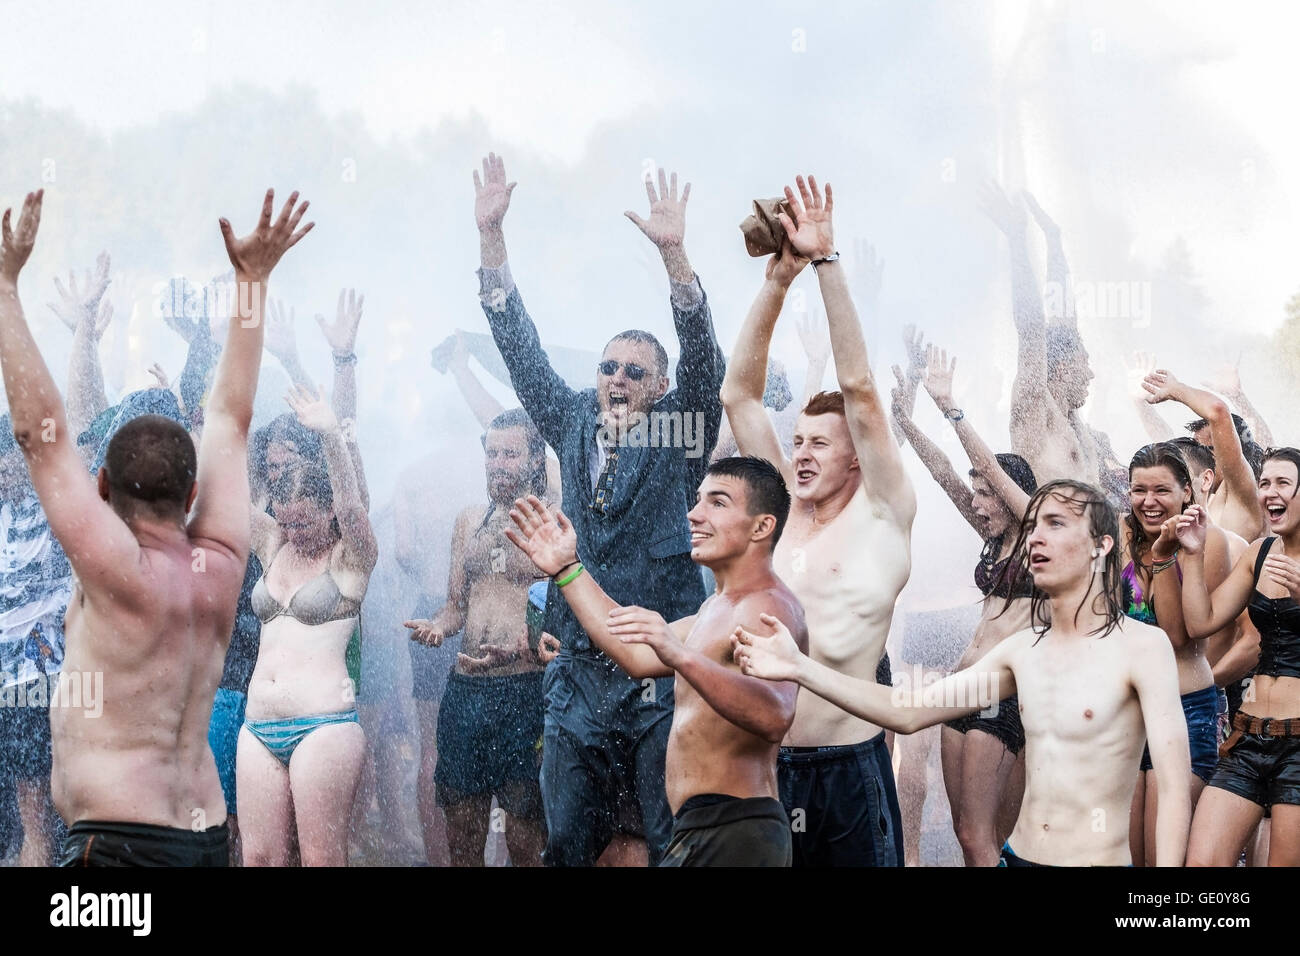 People enjoying water curtain at the19th Przystanek Woodstock (Woodstock Festival). - Stock Image